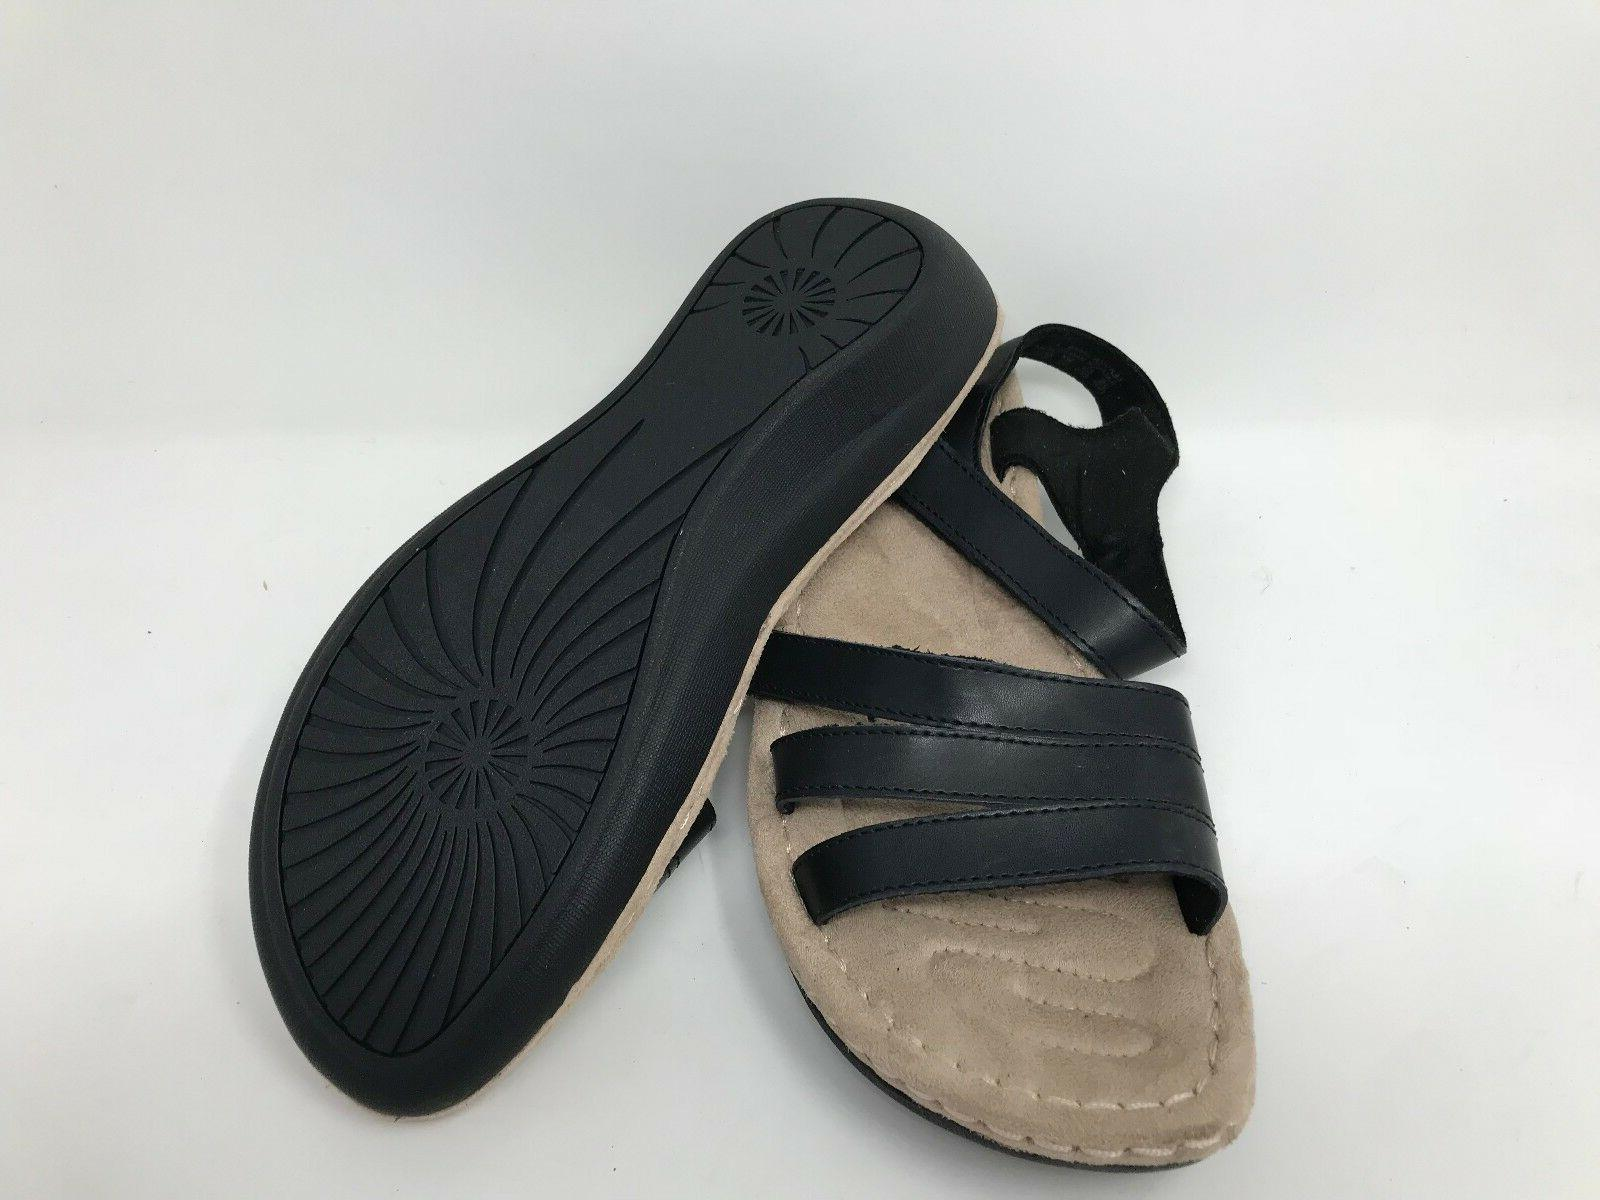 New! 52197 Ritza Wedge Sandal - Black R16